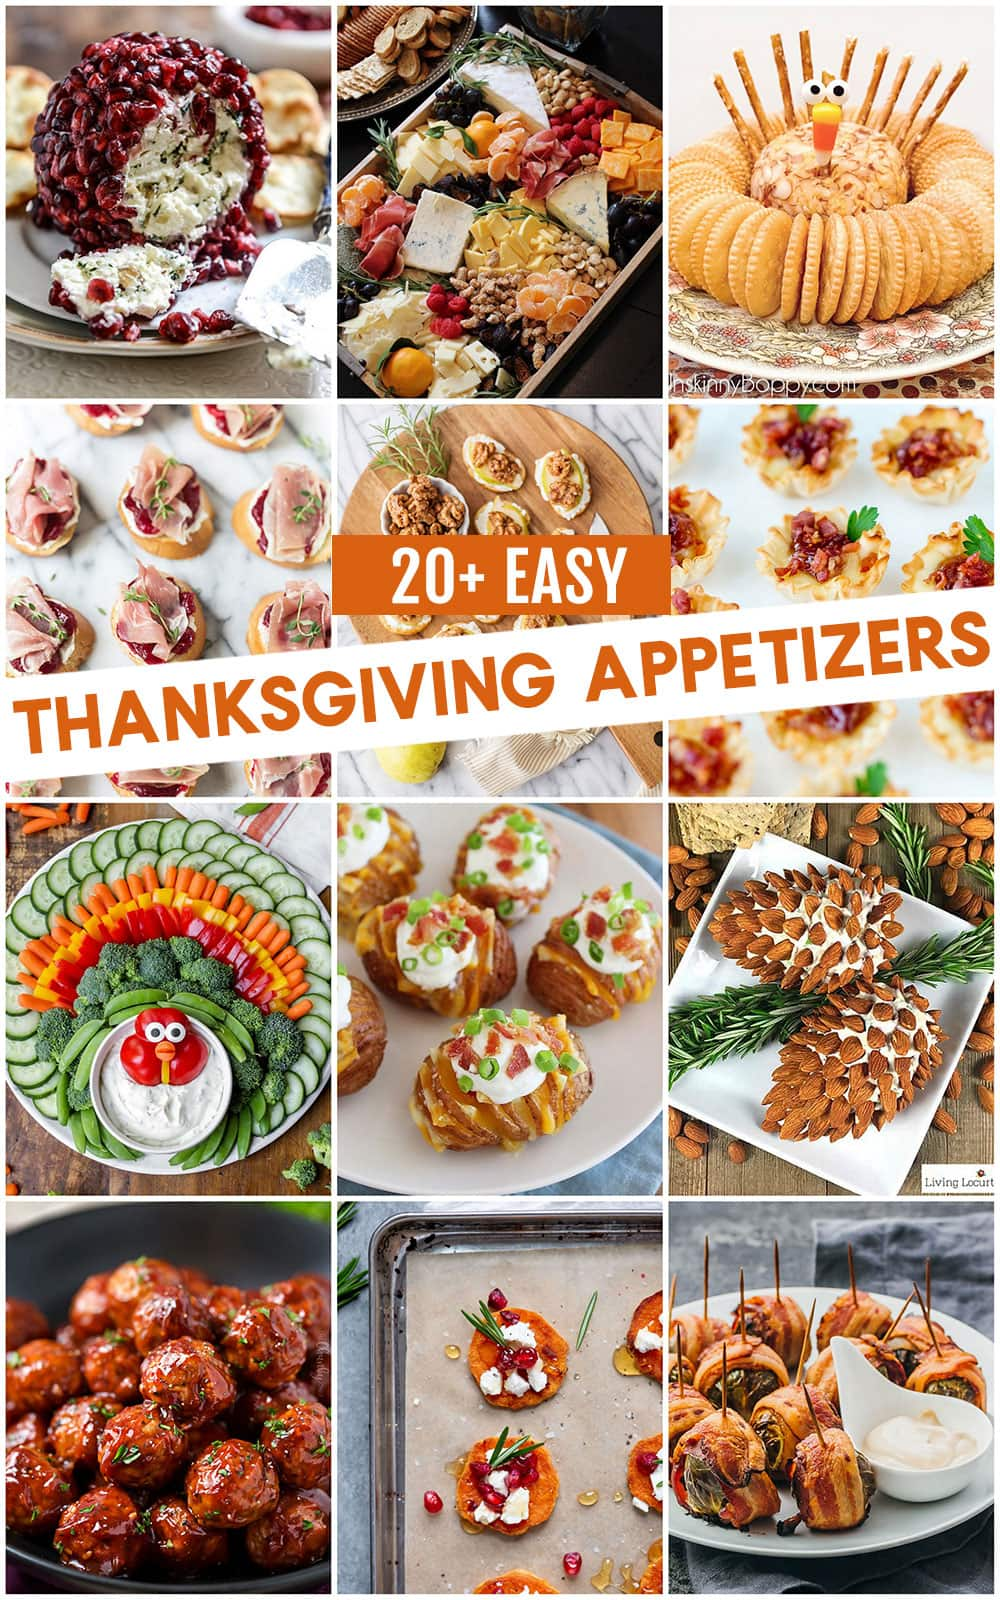 Easy Thanksgiving Appetizers to Feed a Crowd!